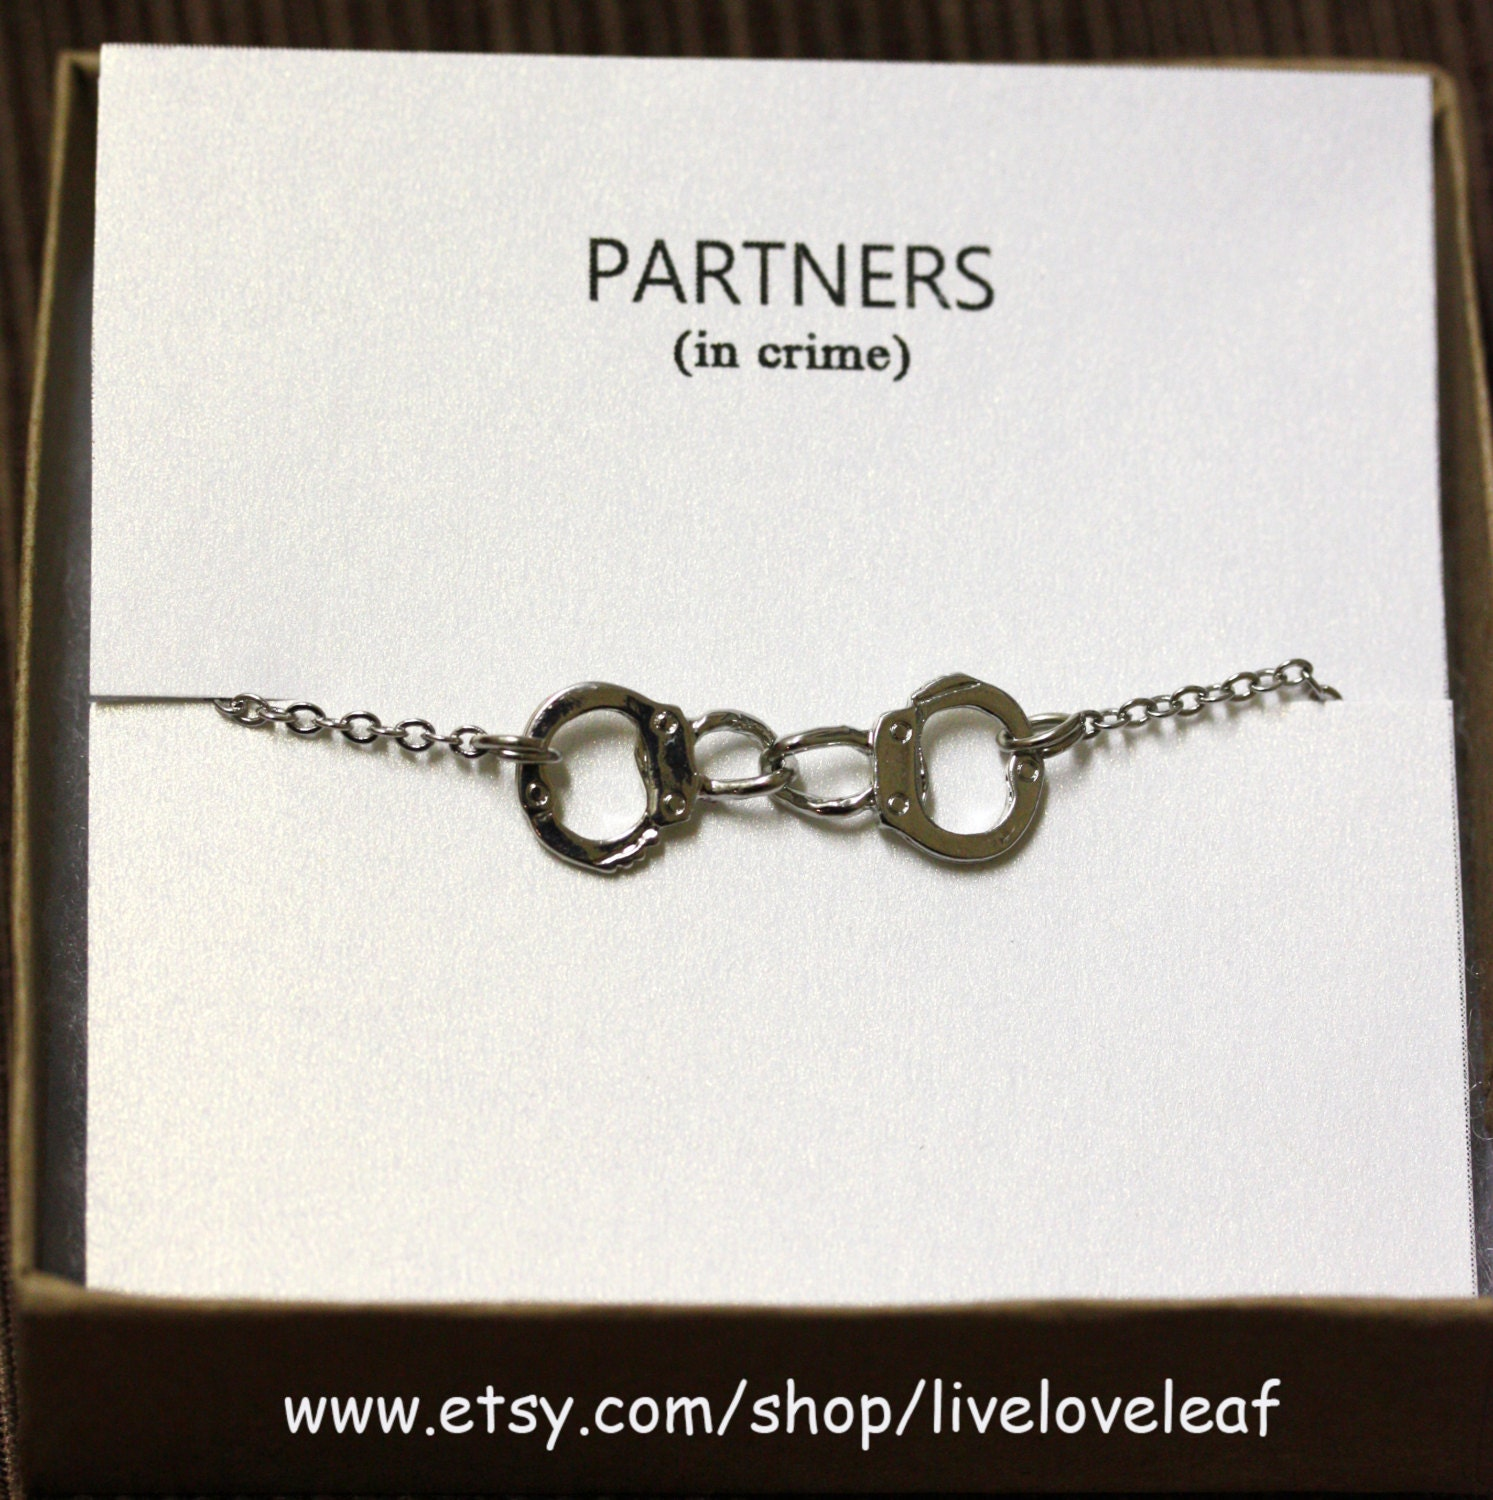 best friends partners in crime bracelet silver handcuffs